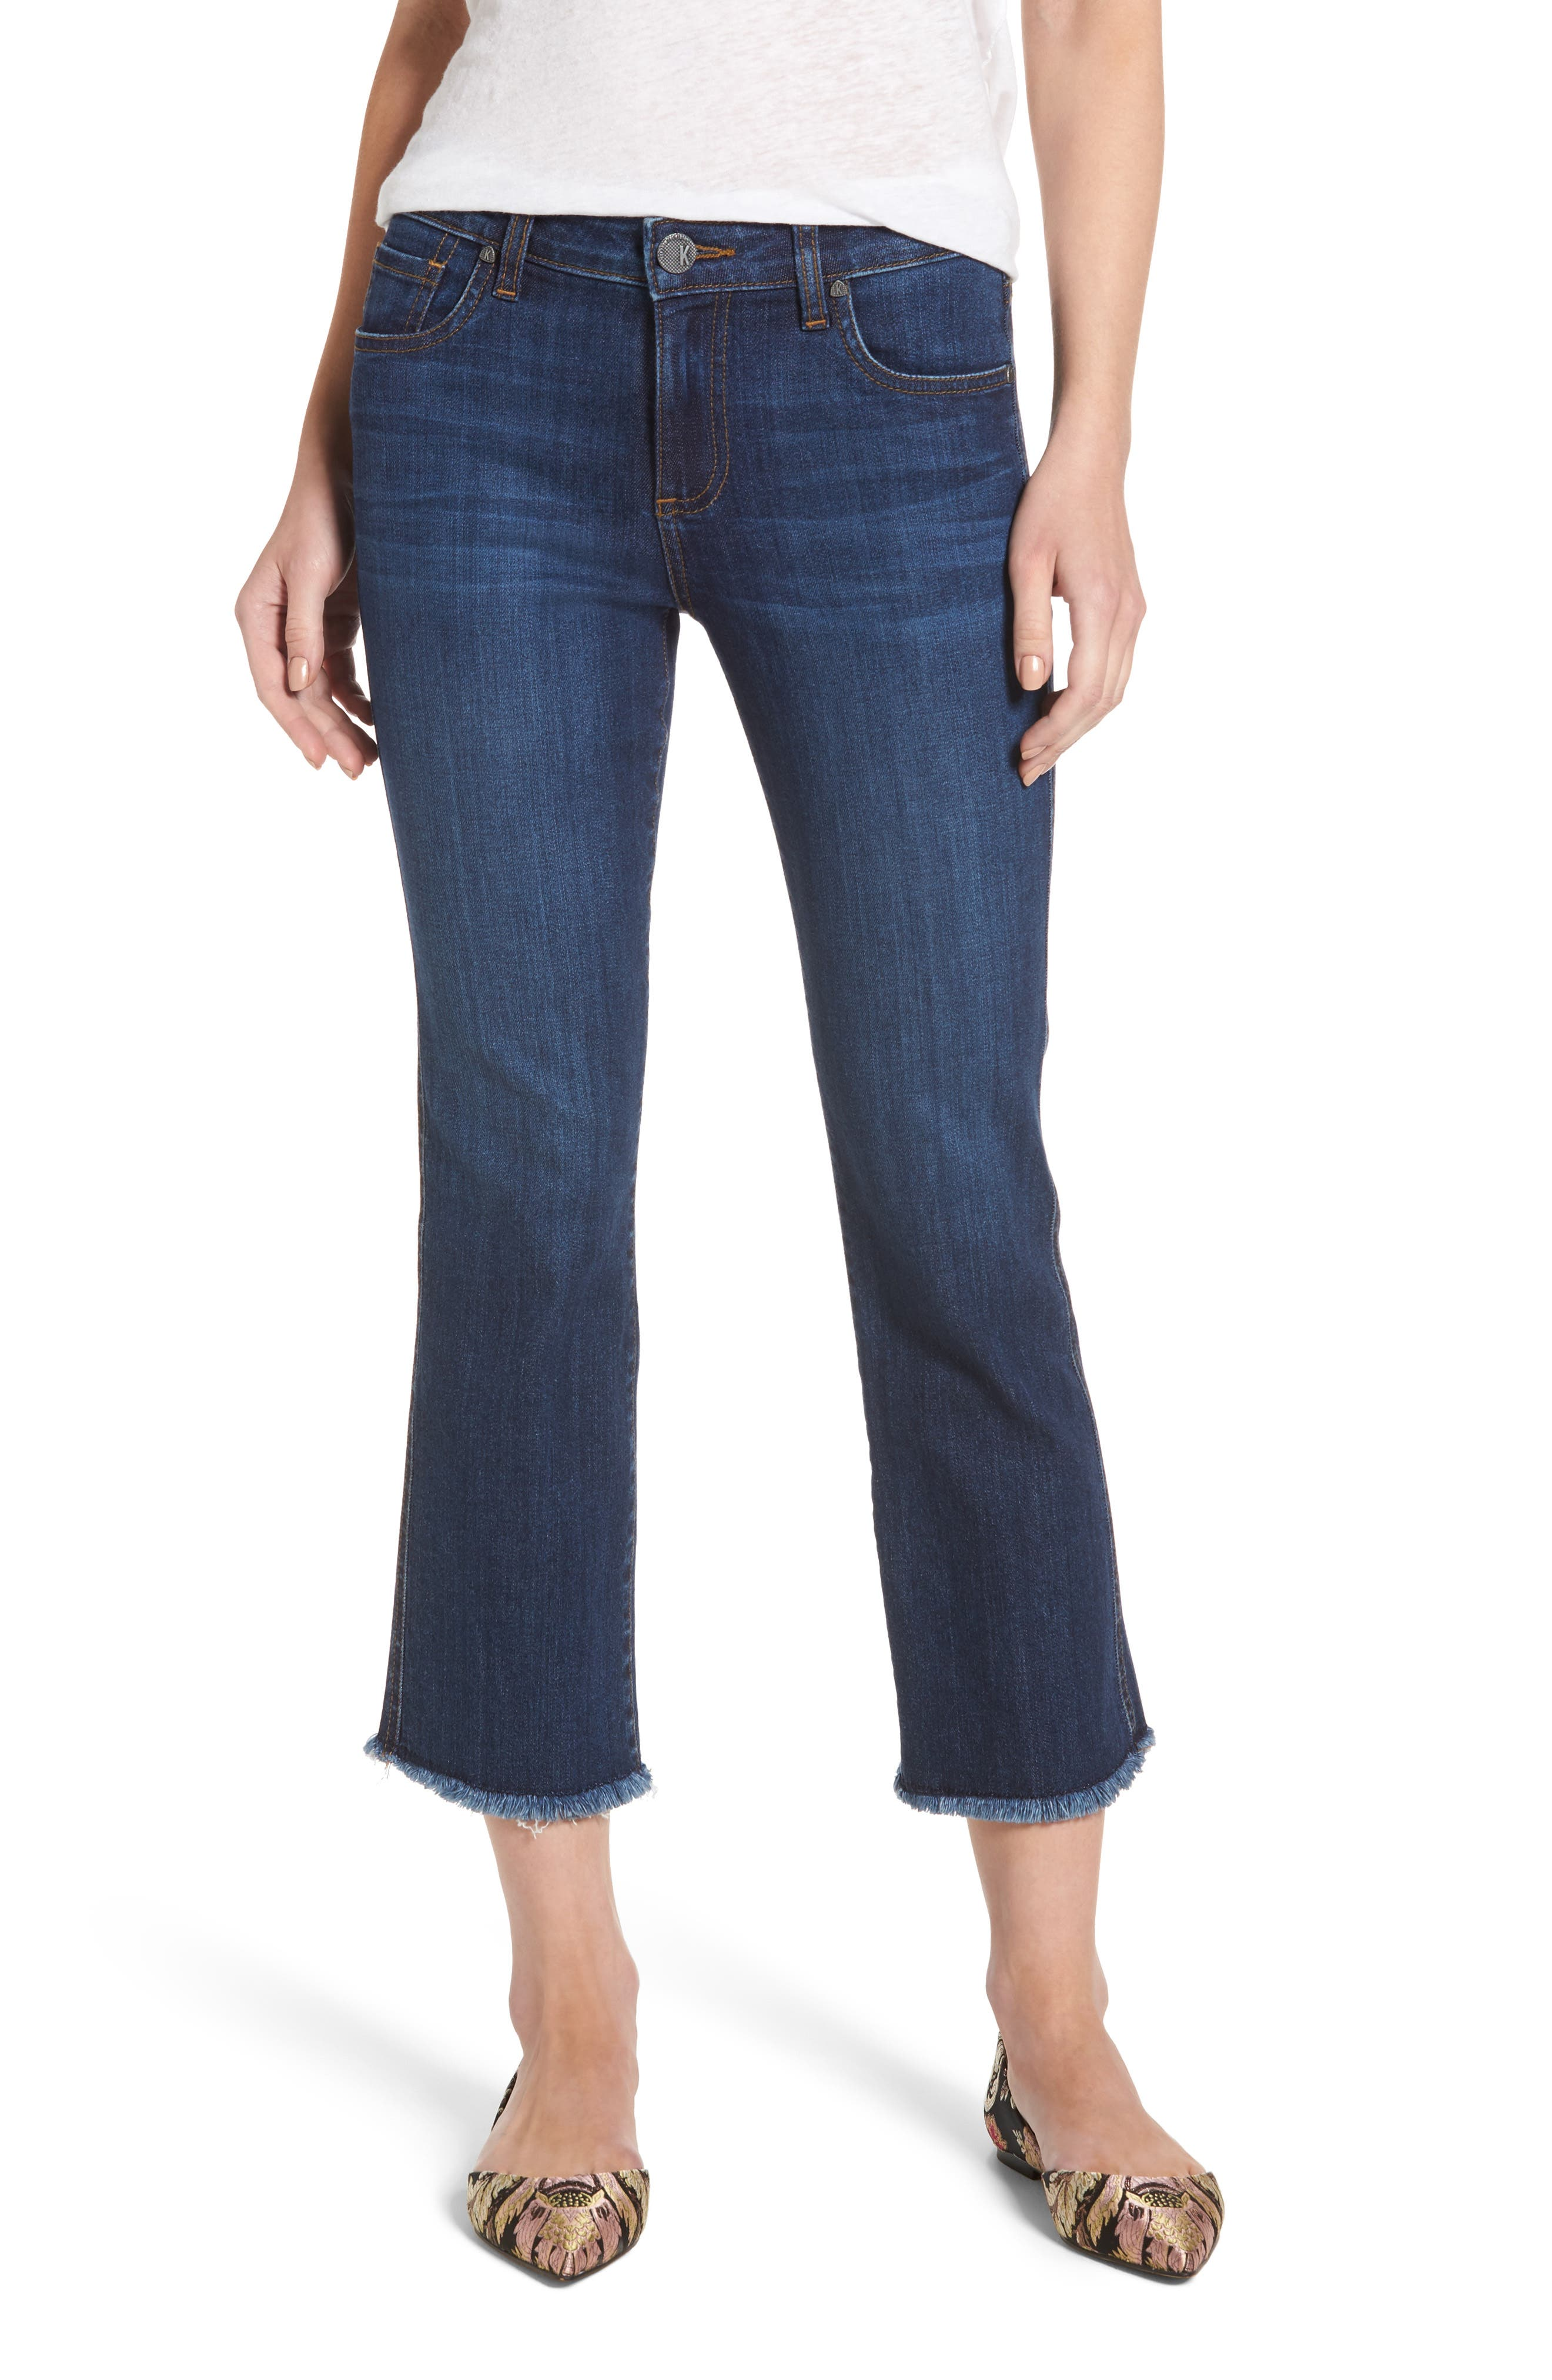 Main Image - KUT from the Kloth Reese Frayed Ankle Jeans (Regular & Petite) (Upheld)